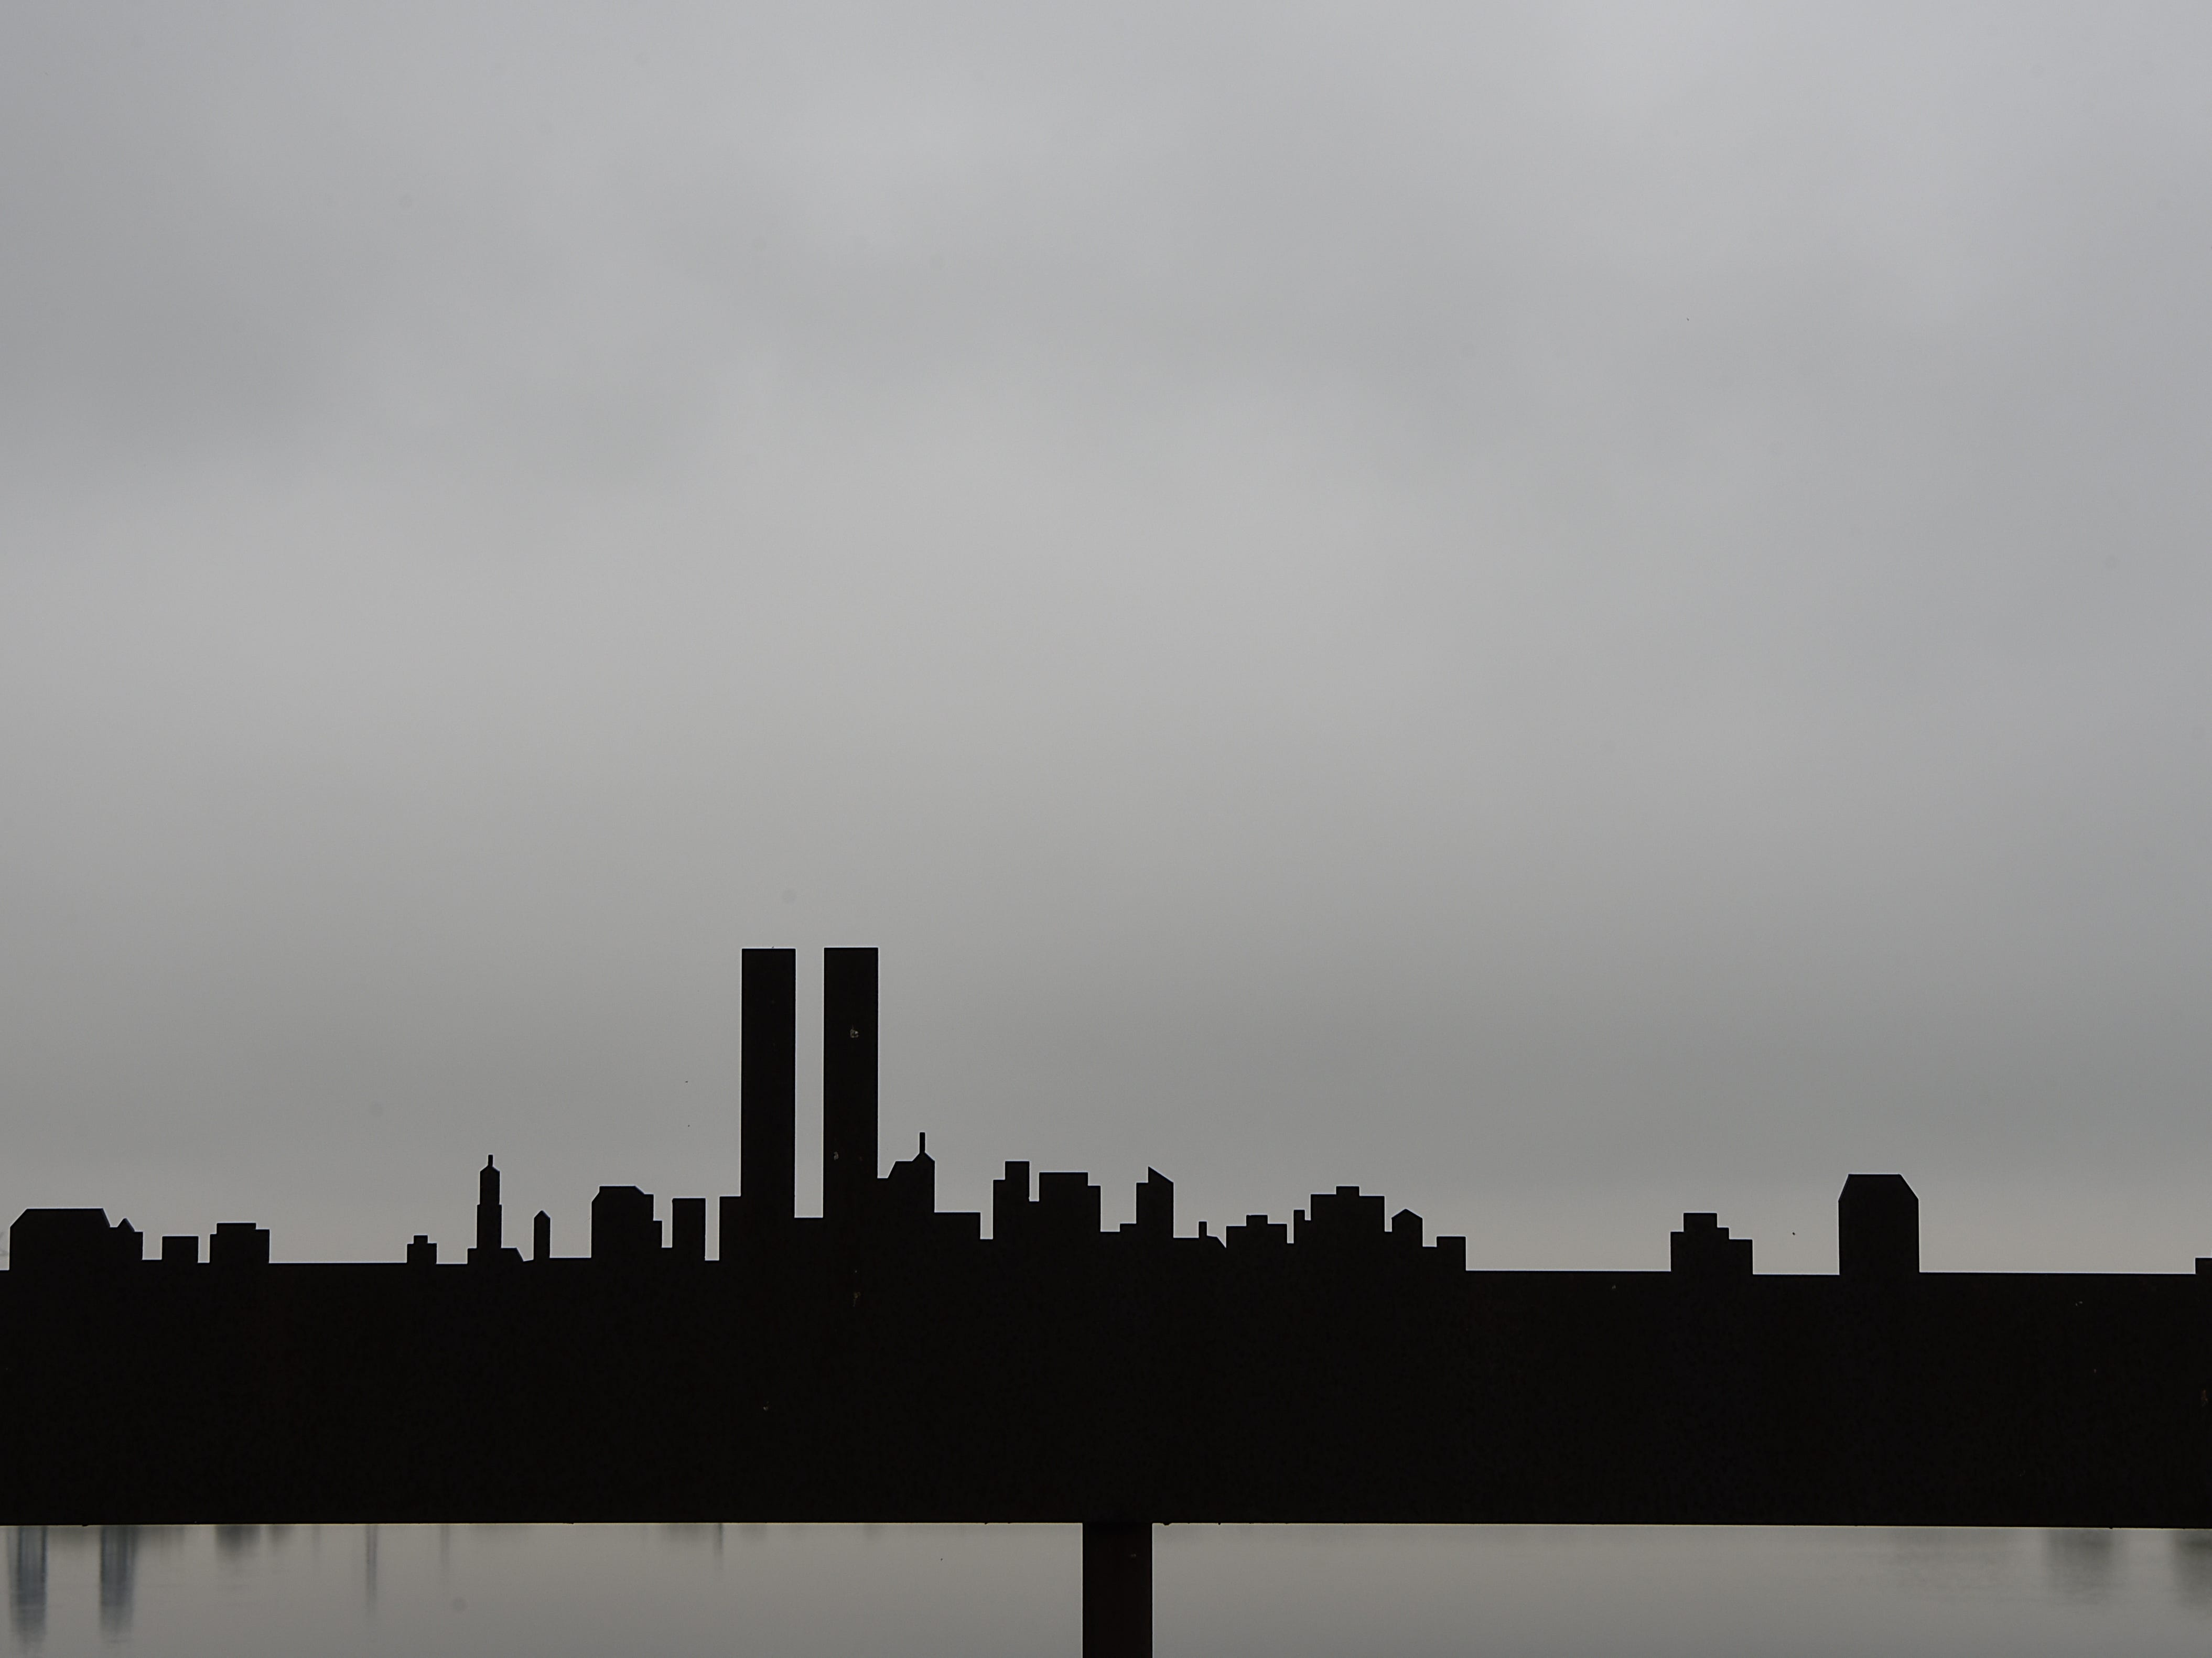 Metal sculpture of the skyline including the twin towers at DeKorte Park in Lyndhurst on Tuesday September 11, 2018.